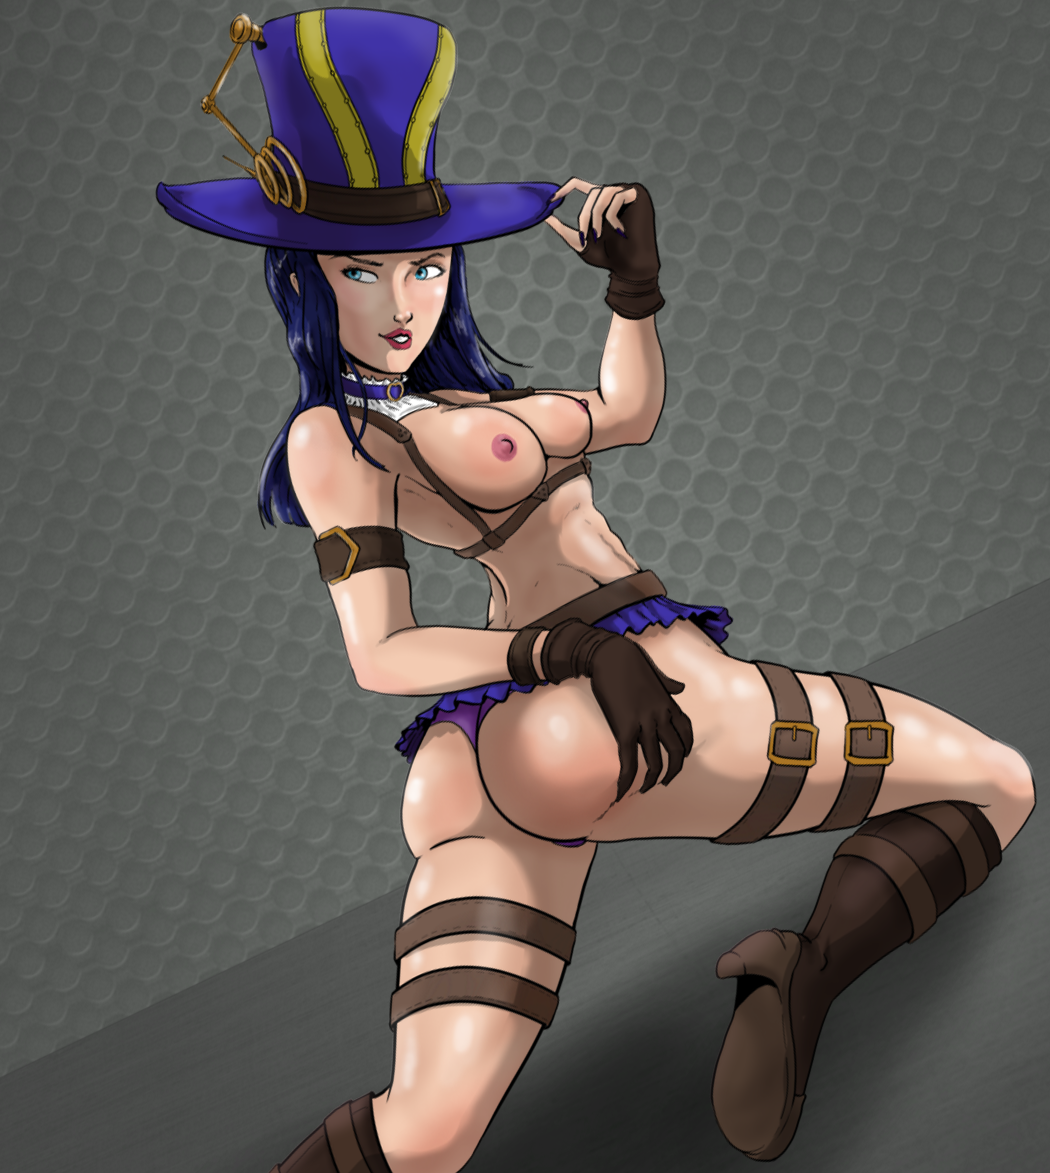 2565152 - Caitlyn League_of_Legends SealedHelm